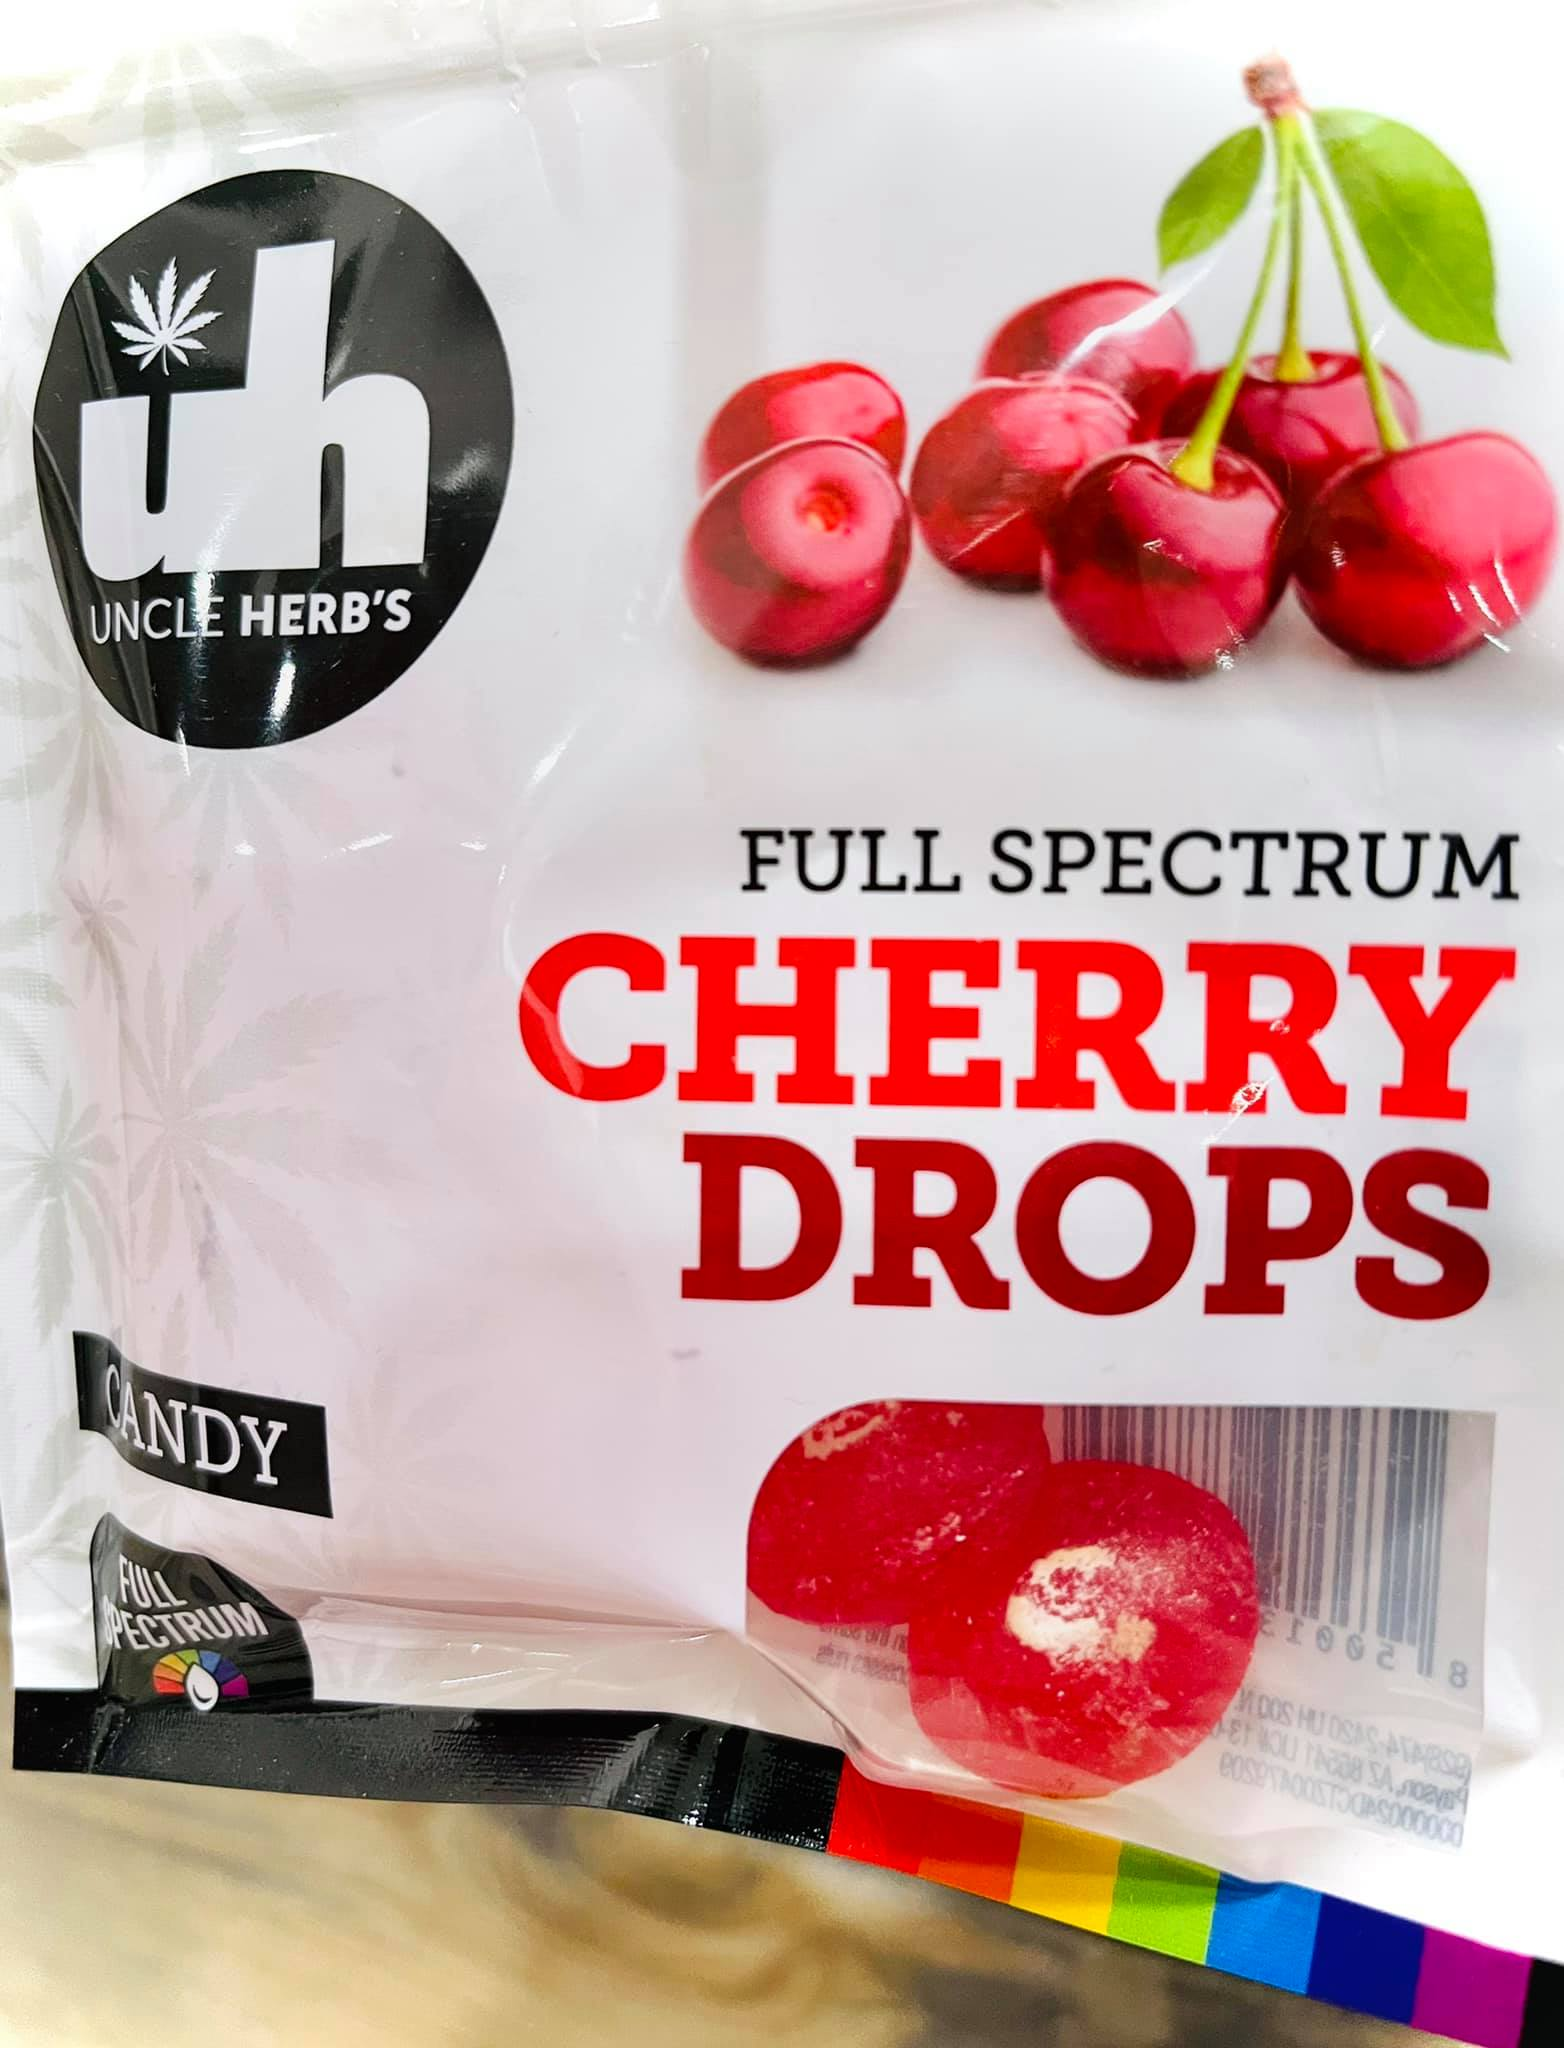 uncle herbs full spectrum cherry drops edibles dispensary